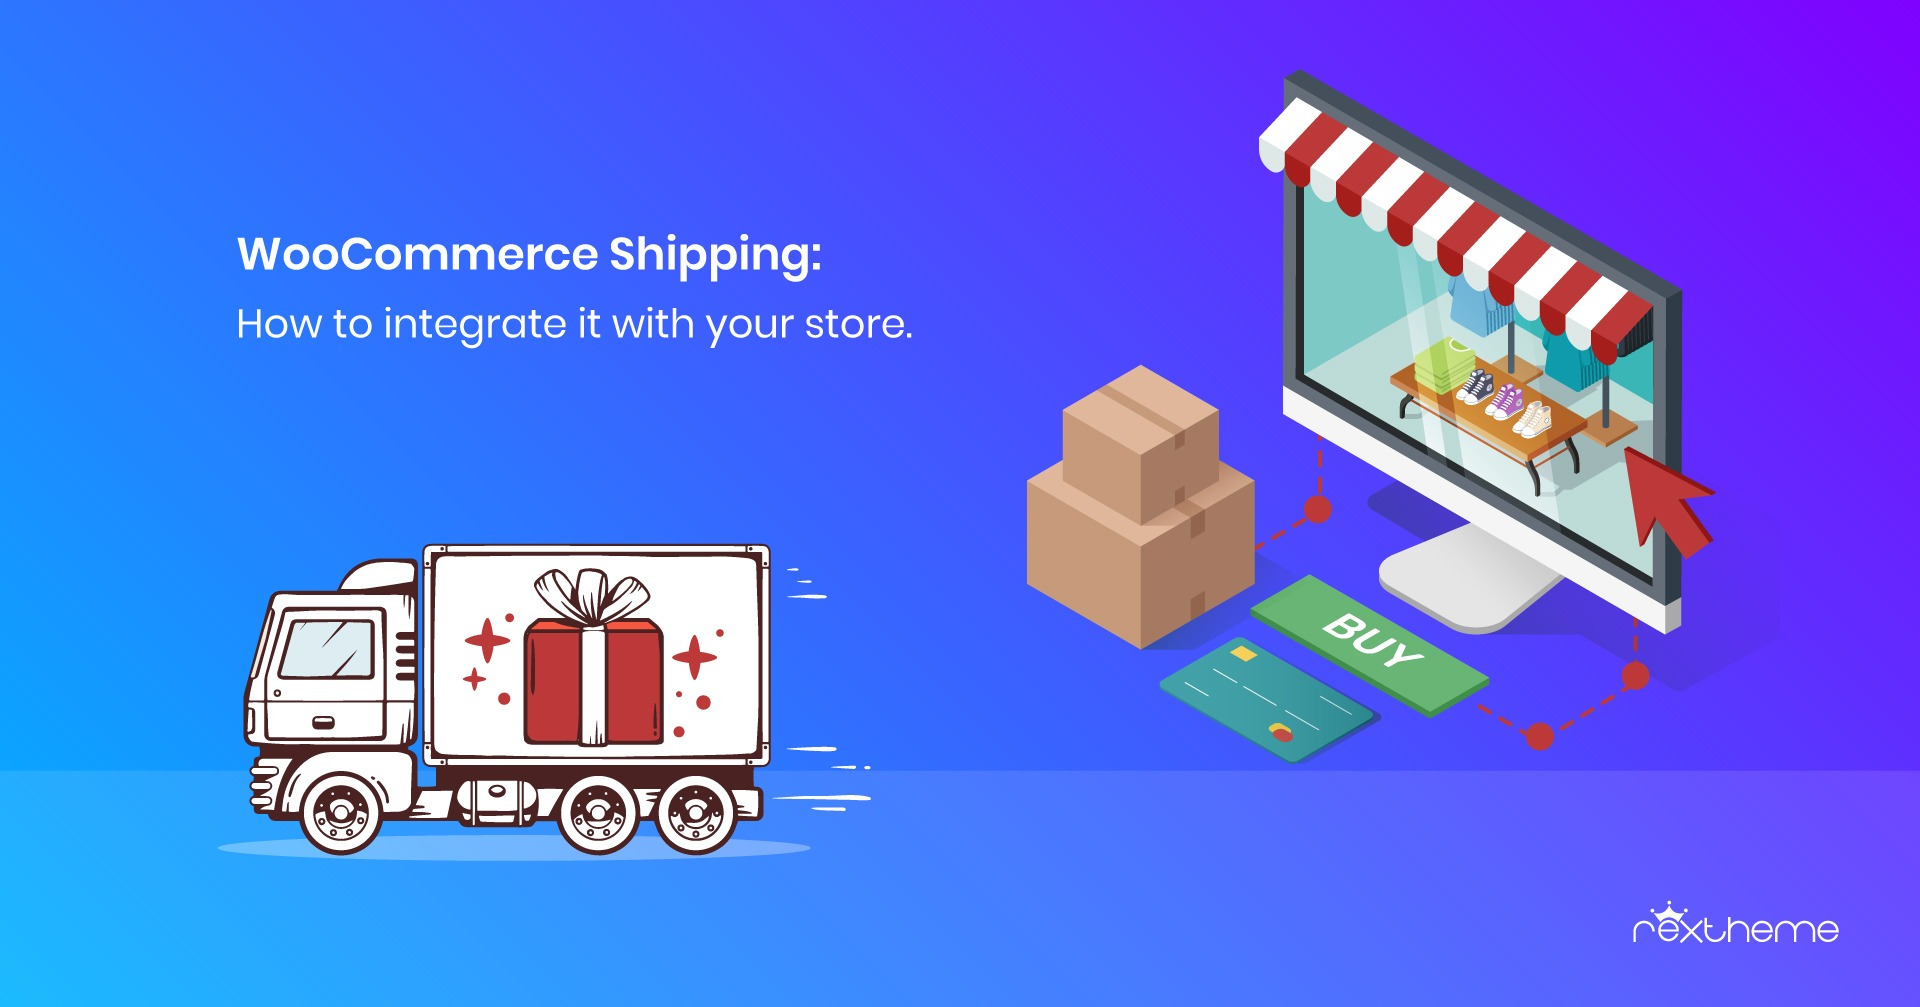 WooCommerce Shipping Feature Image